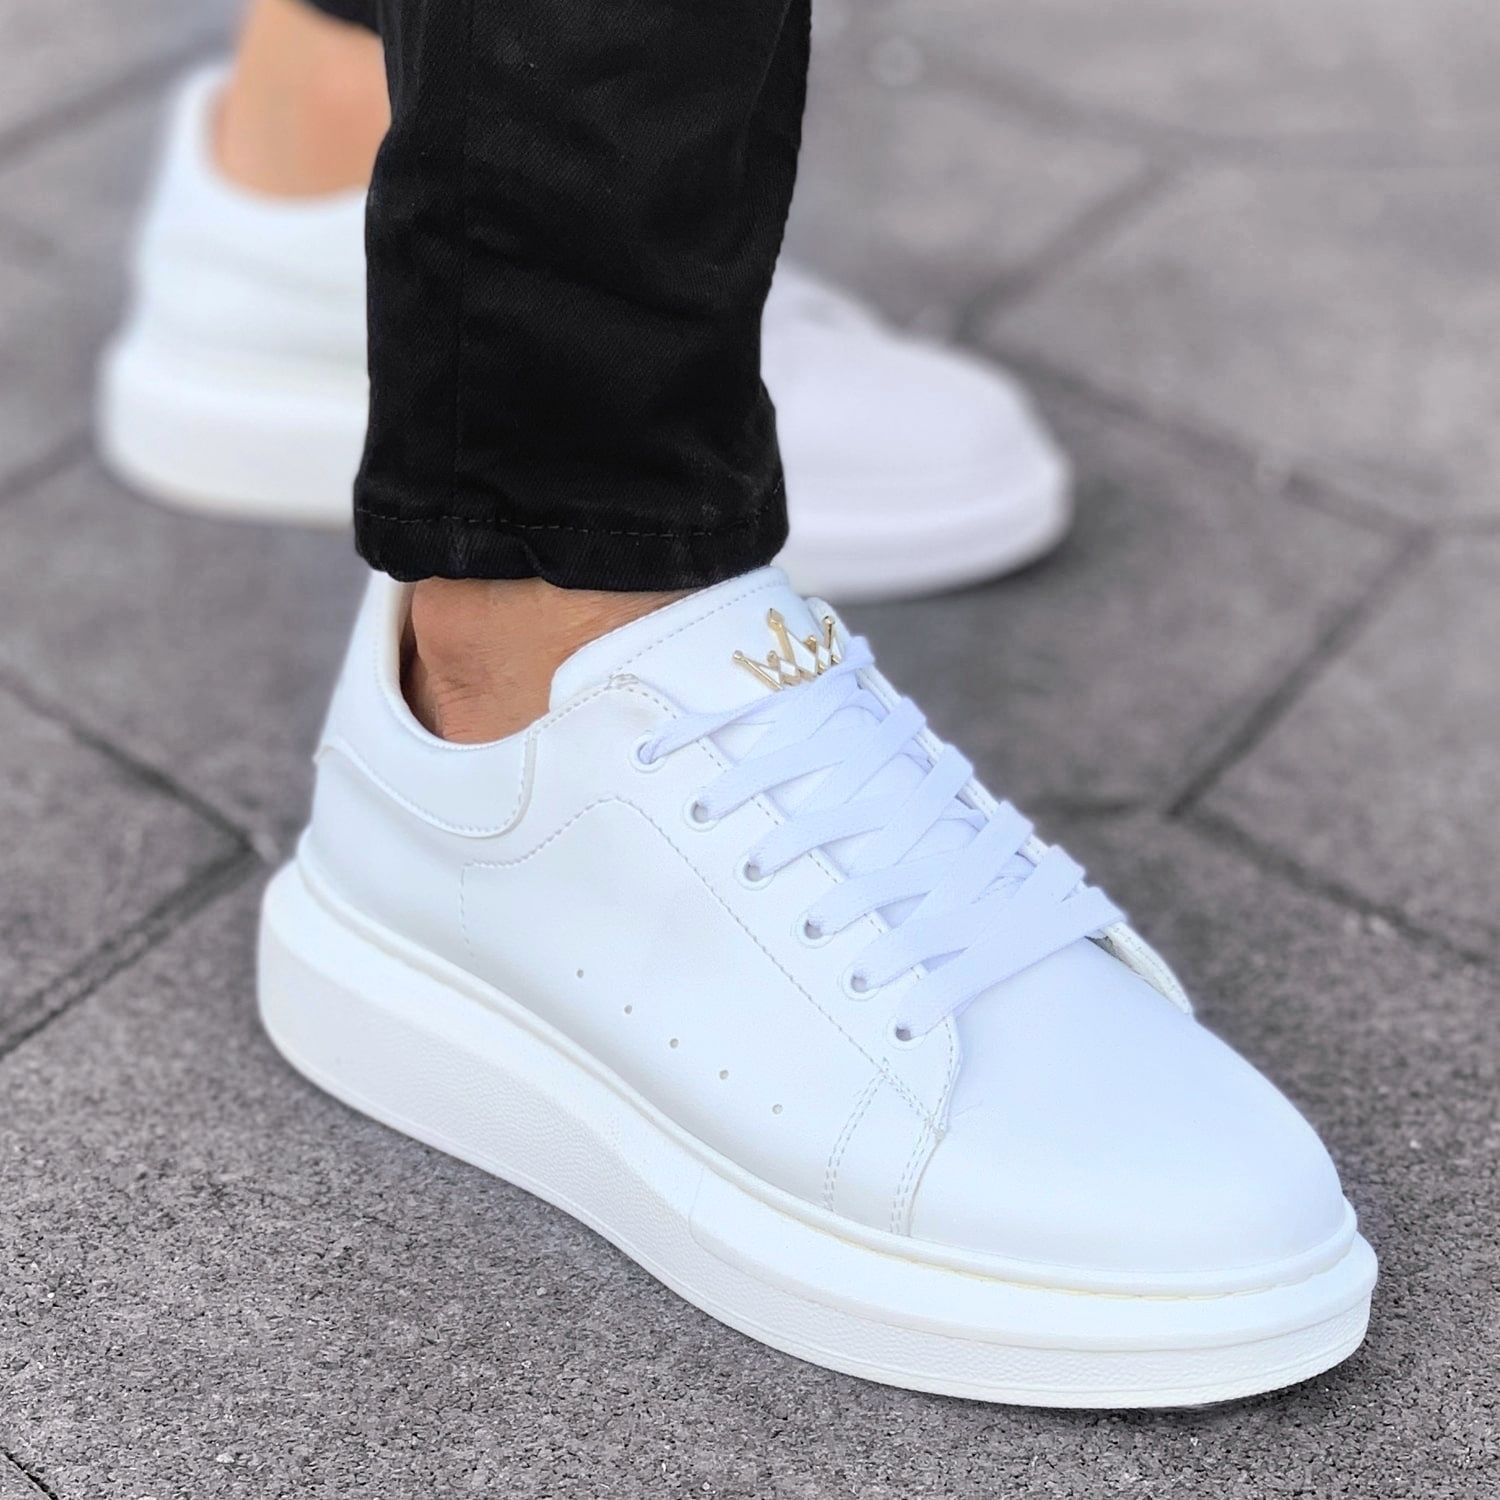 men sneakers man shoes sneaker high quality high sole shoe wholesale good best price high sole 2020